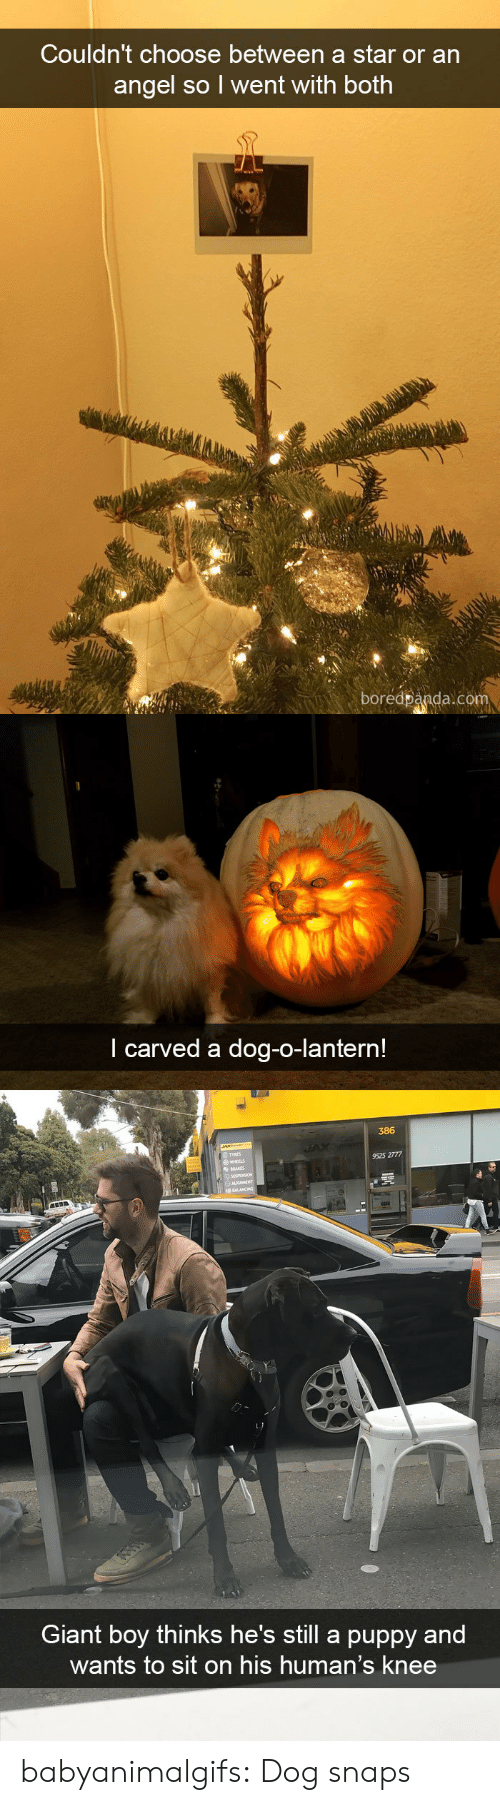 lantern: Couldn't choose between a star or an  angel so l went with both  boredpanda.com   I carved a dog-o-lantern!   386  TYRES  9525 2777  HEELS  Giant boy thinks he's still a puppy and  wants to sit on his human's knee babyanimalgifs:  Dog snaps